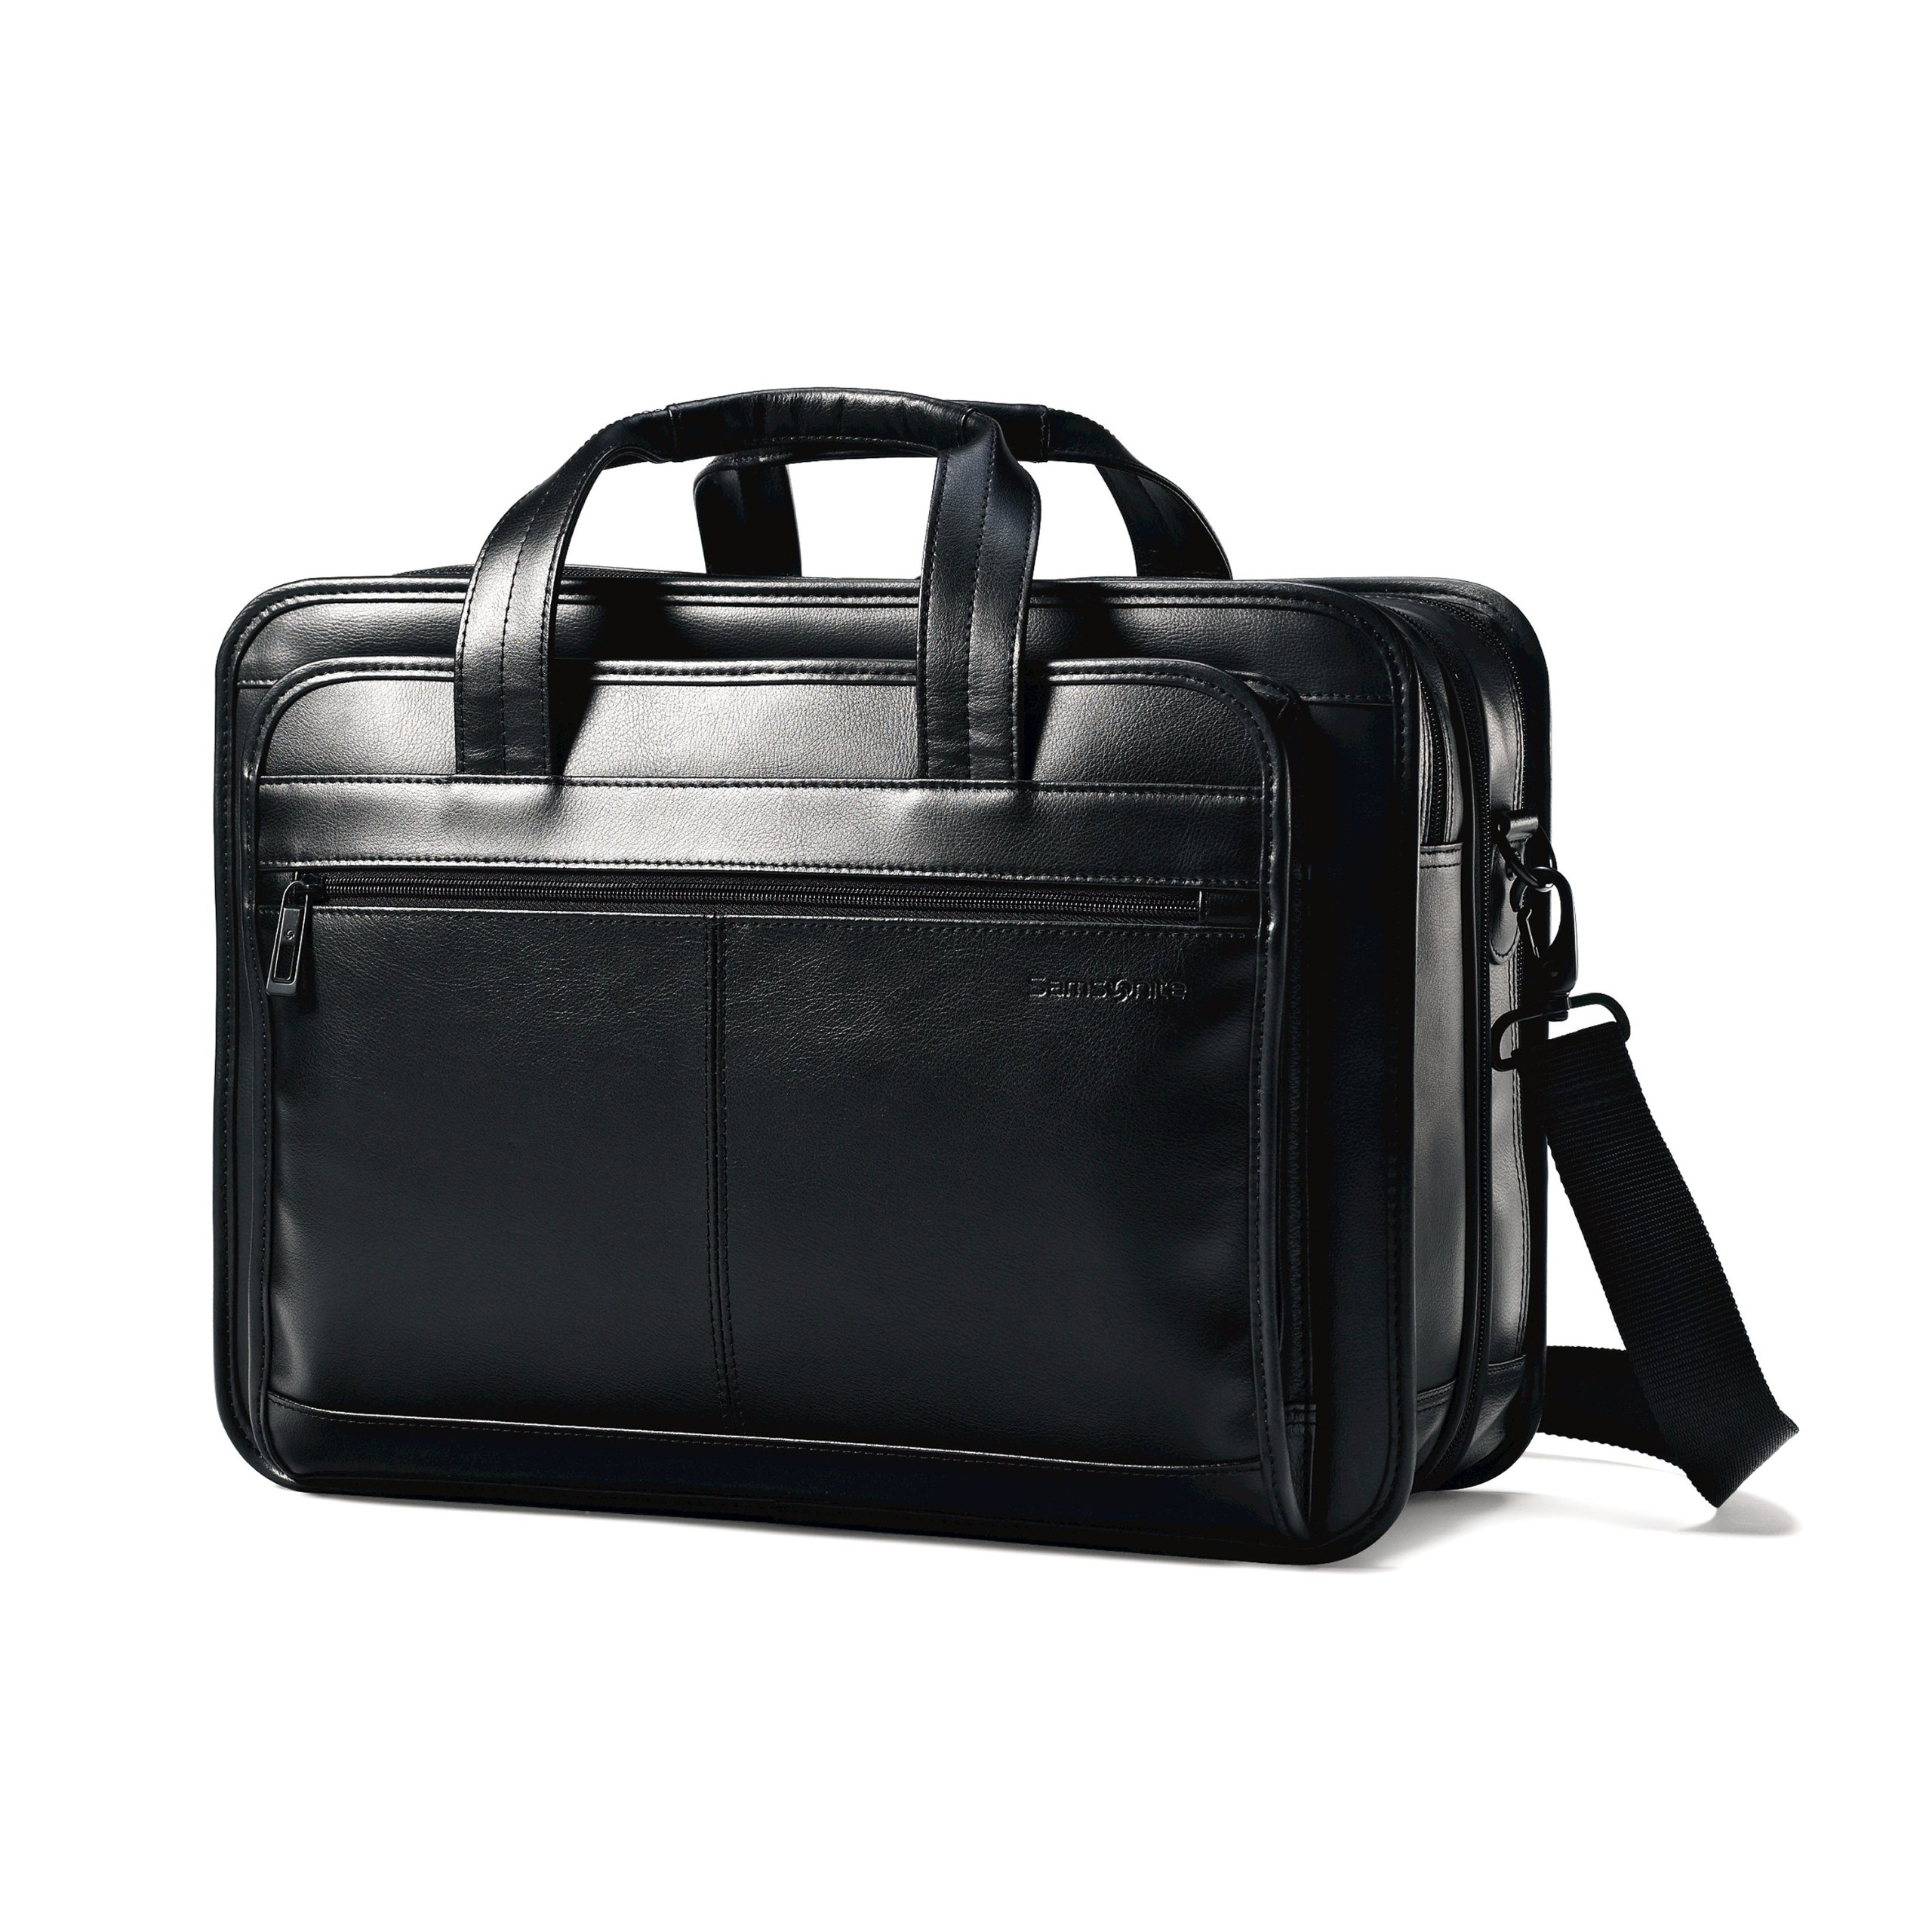 Samsonite Leather Expandable Briefcase, Black